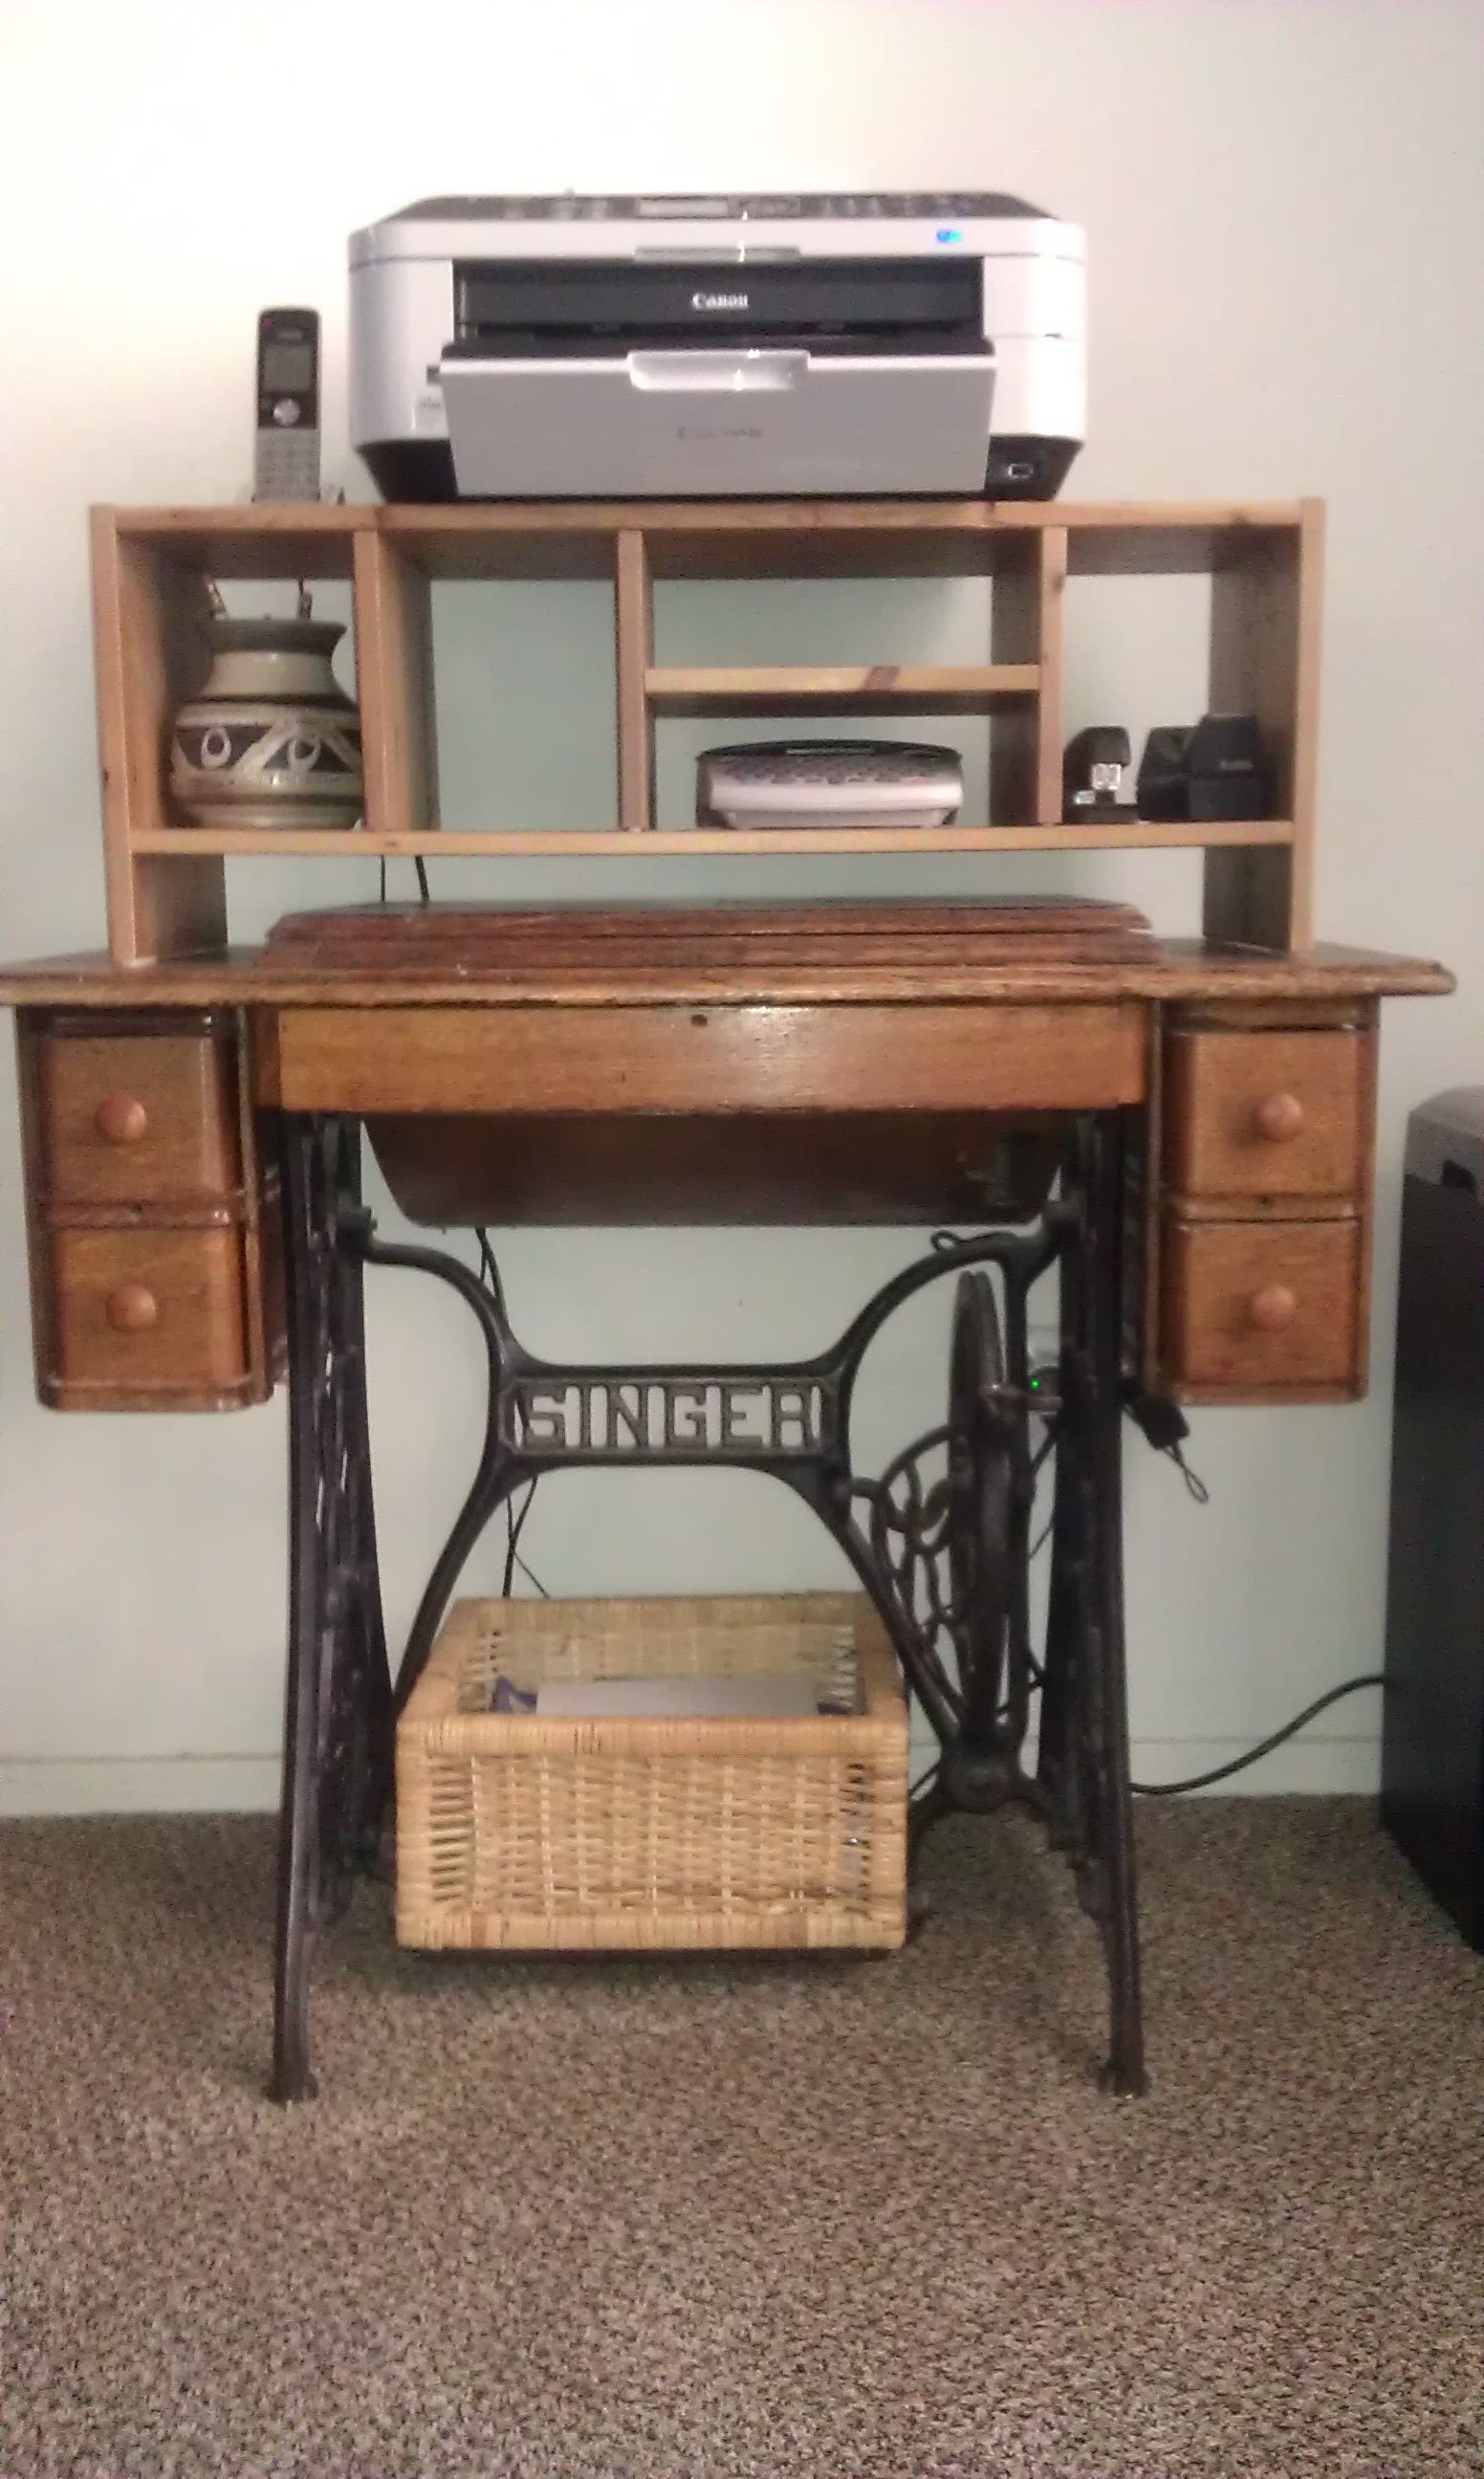 Old Singer Sewing Machine Cabinet Used As A Printer Stand/office Supply  Storage. Staples